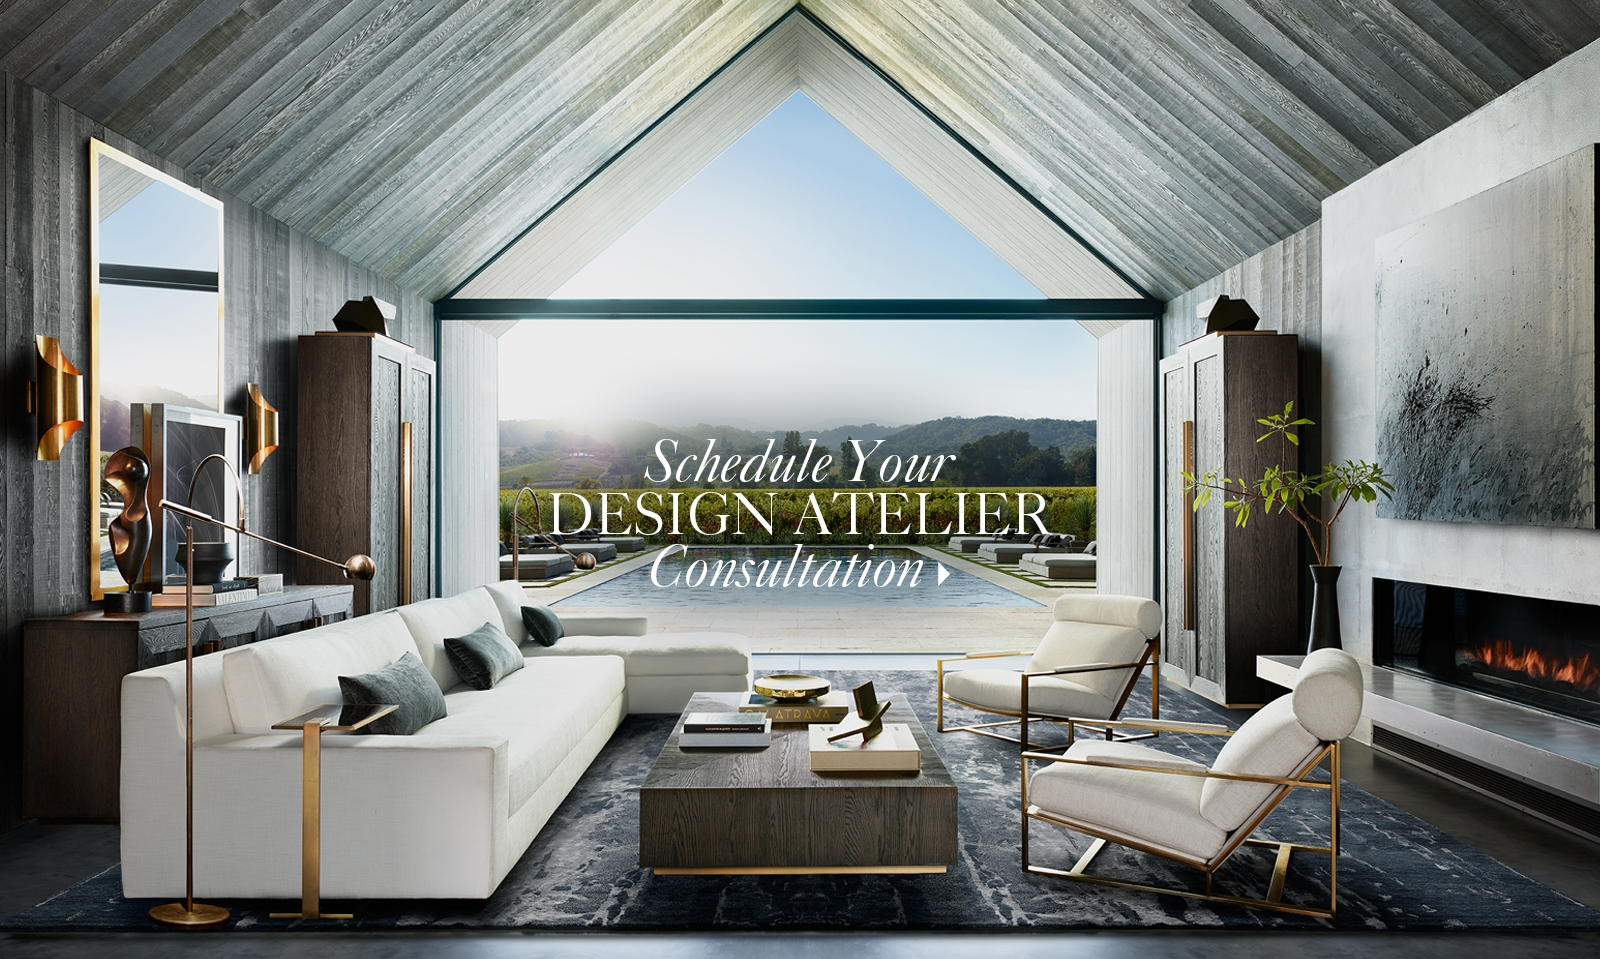 rh homepage imagine yourself here schedule your rh interior design consultation